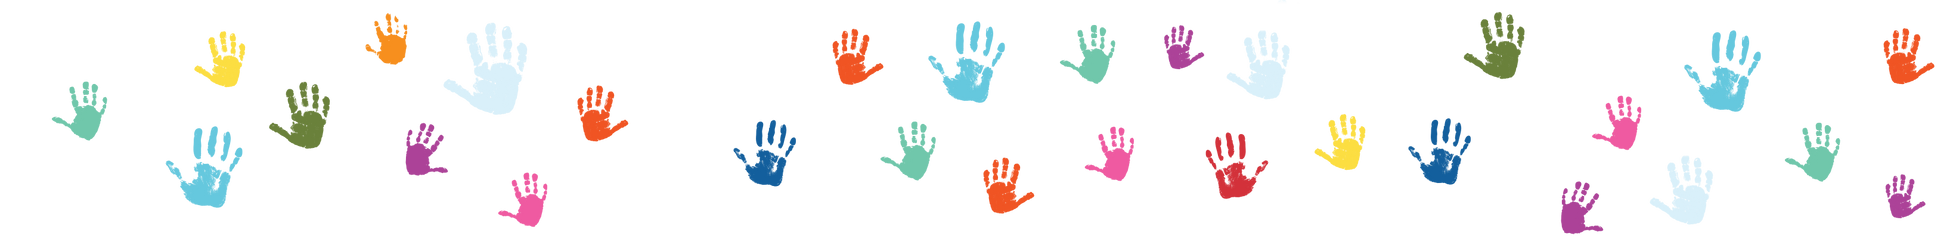 Hands-larger.png